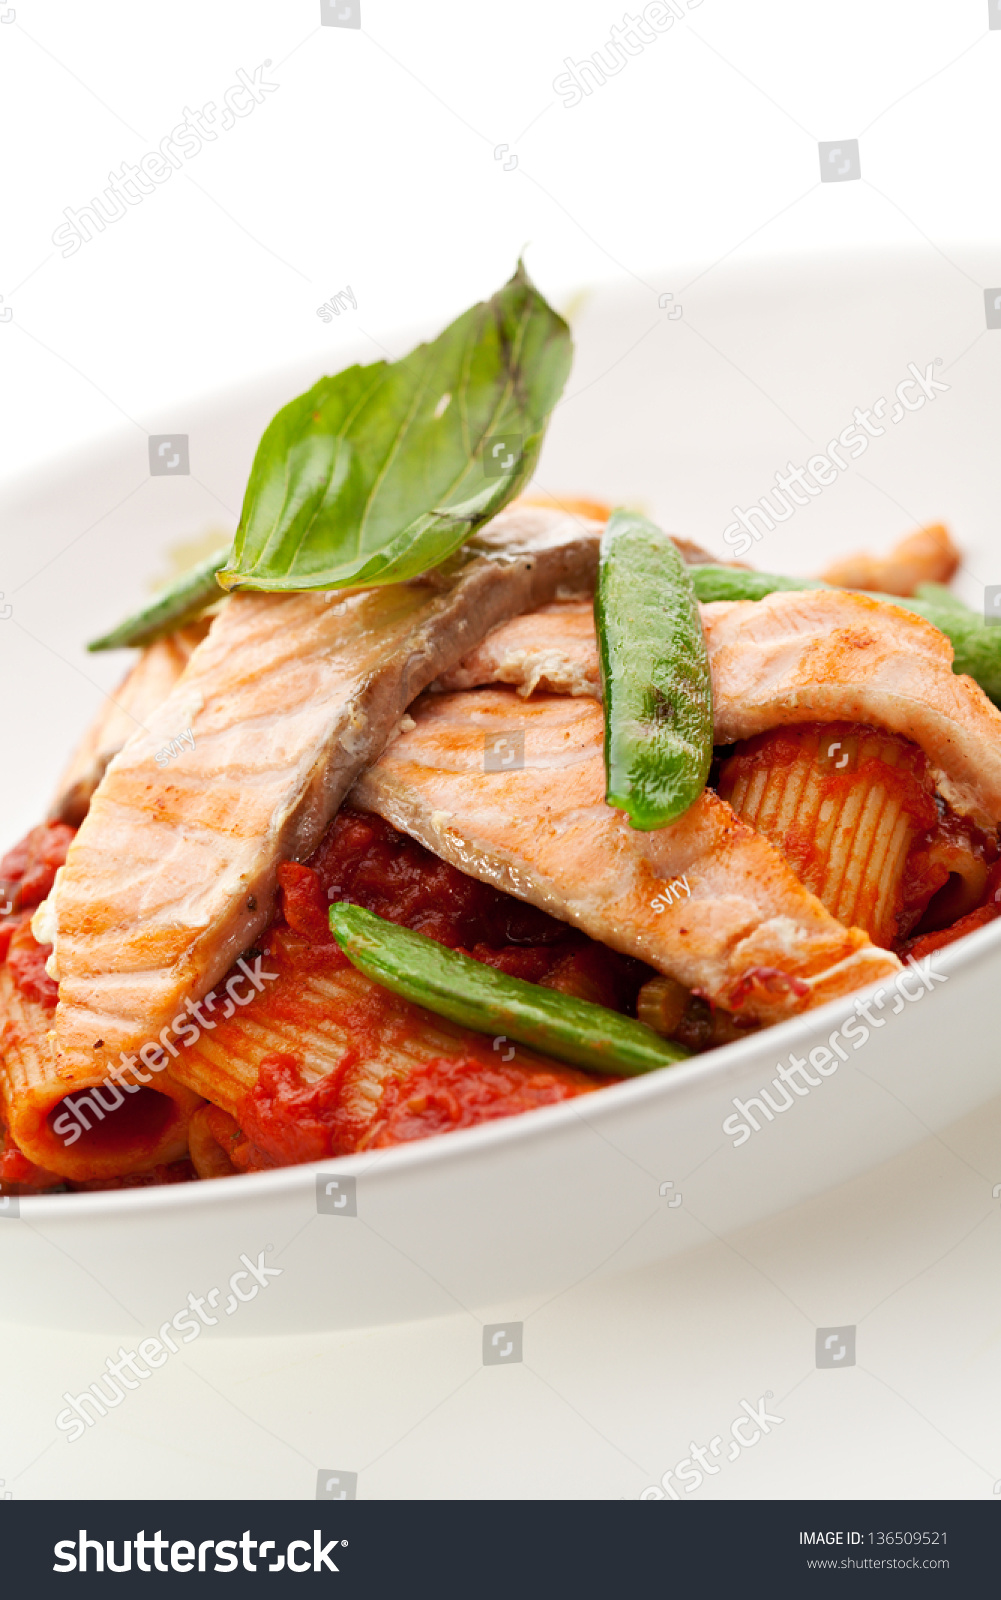 Pasta Penne With Fried Salmon. Garnished With Tomato Sauce Stock Photo ...